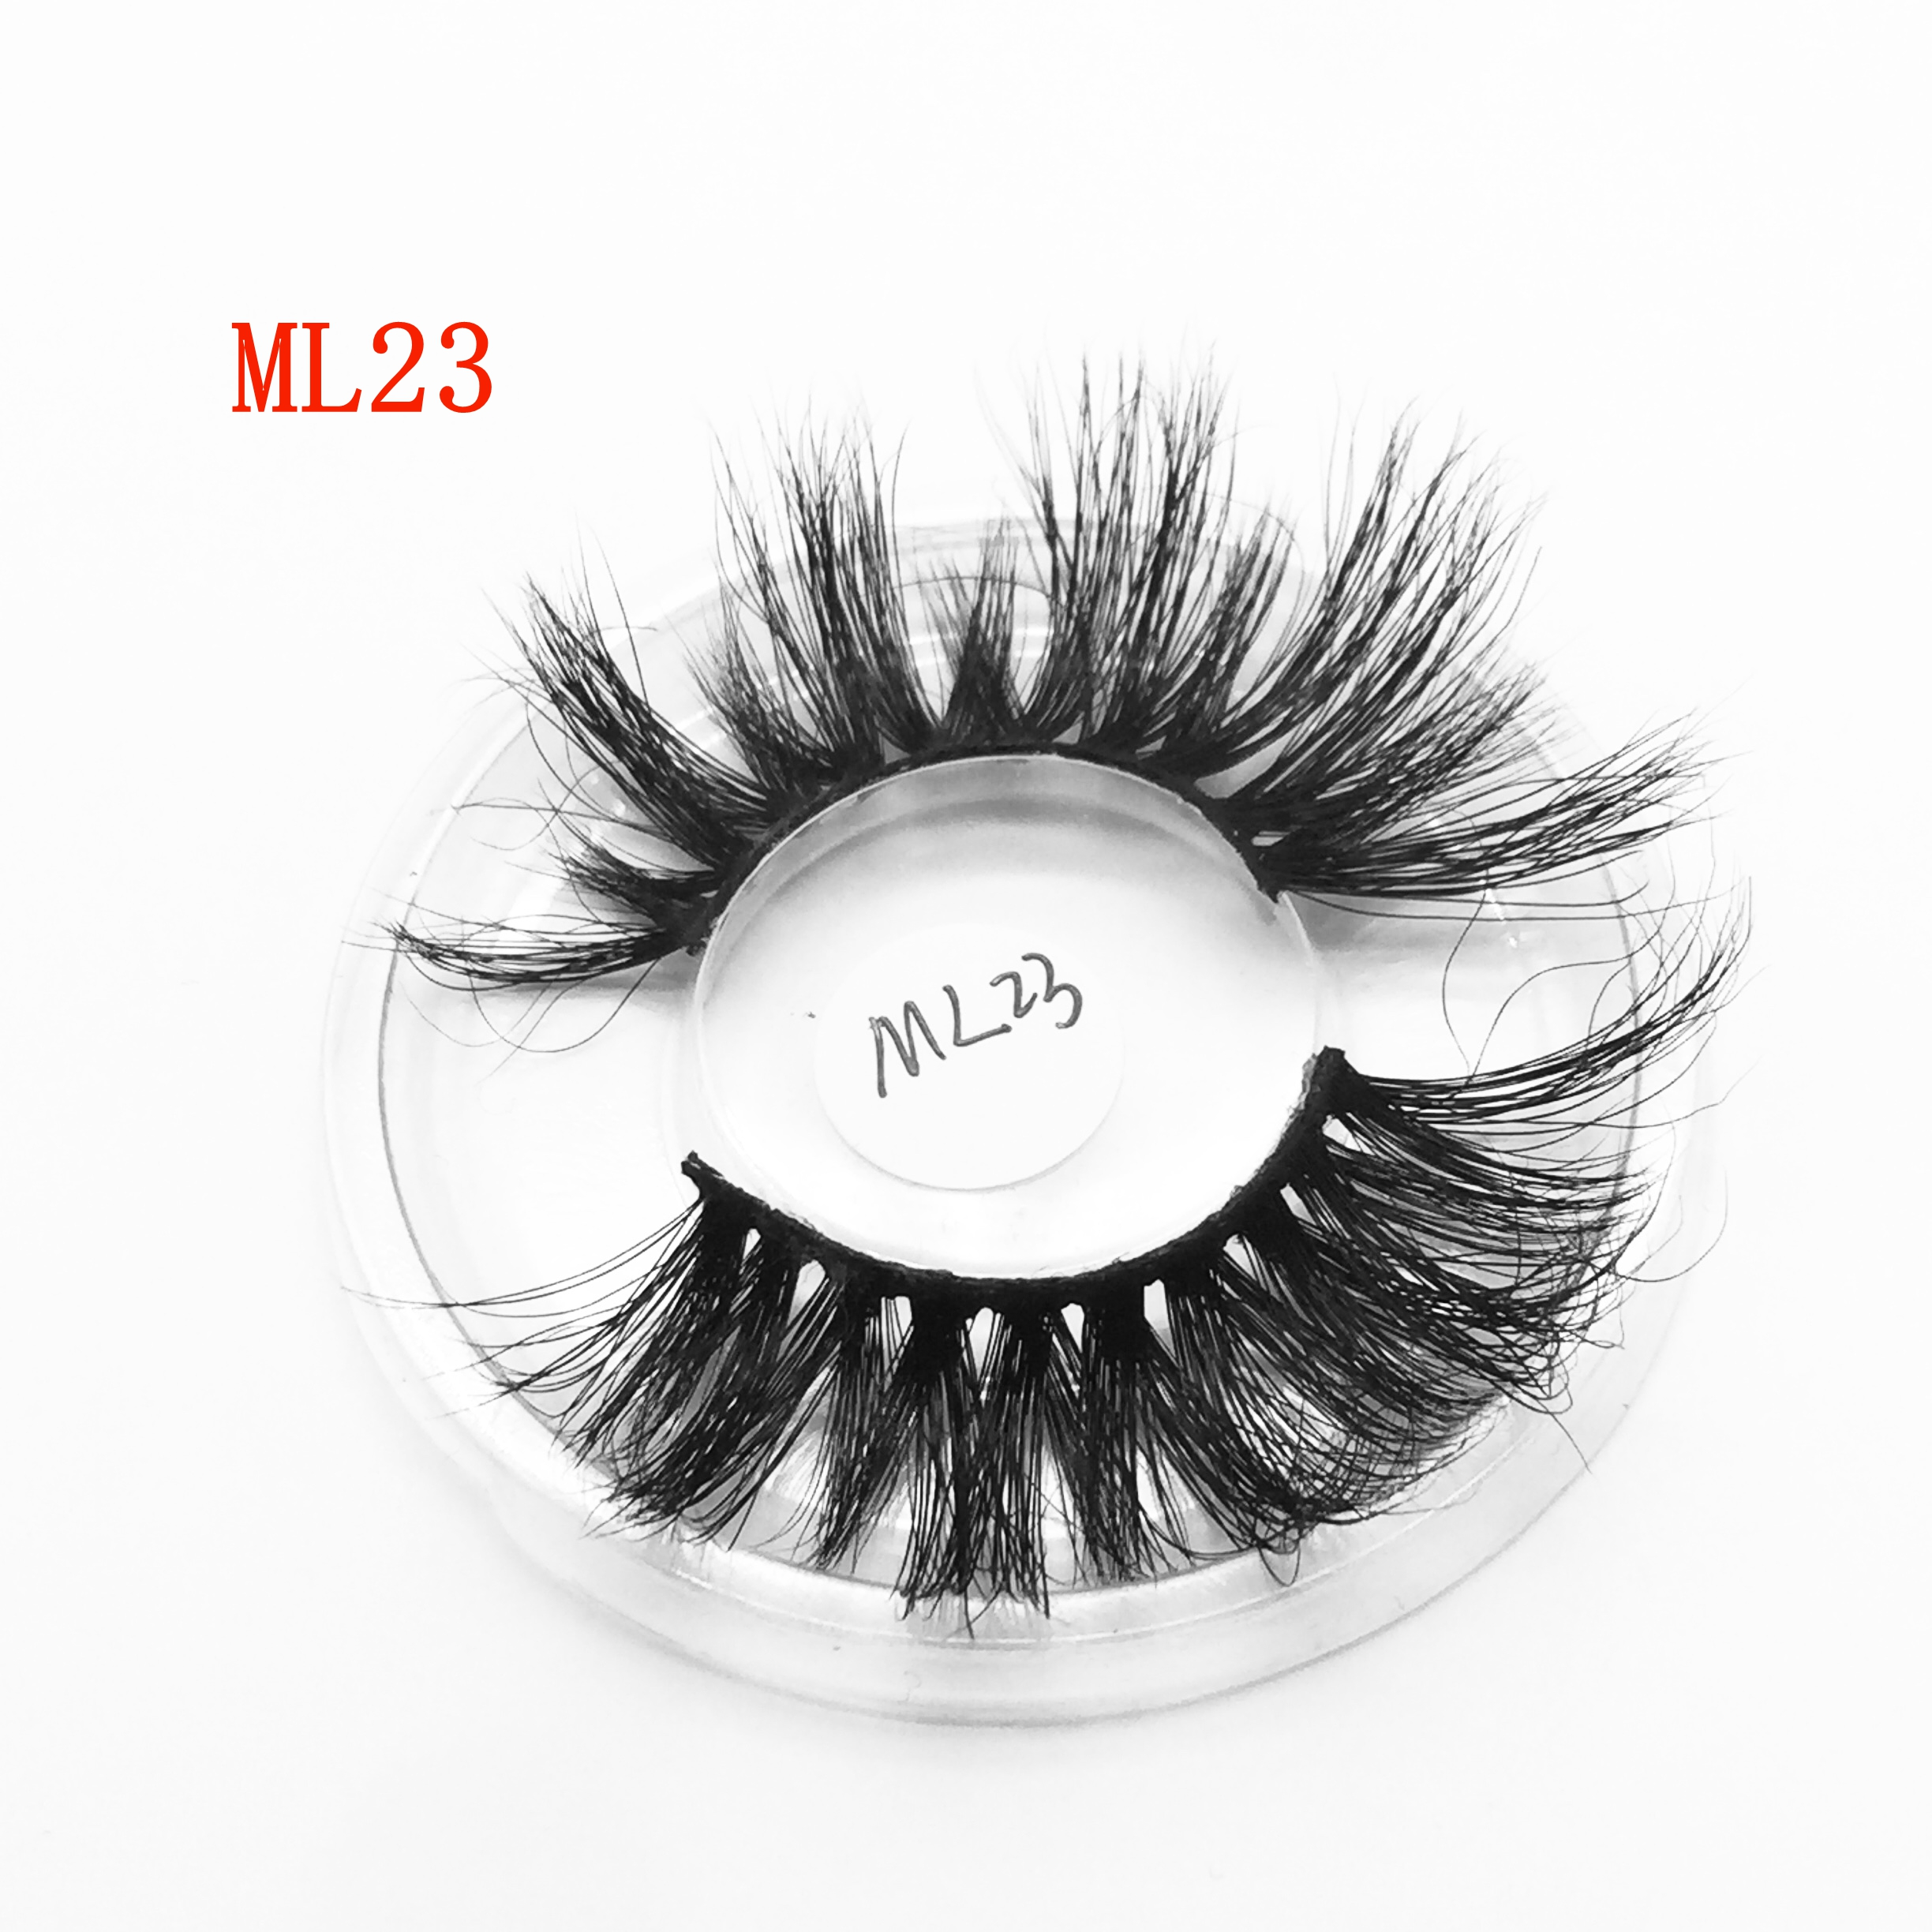 25mm eyelashes 3 d mink eyelash extra long eyelash packaging box new product ideas 2019 <strong>manufacturer</strong> meet beauty